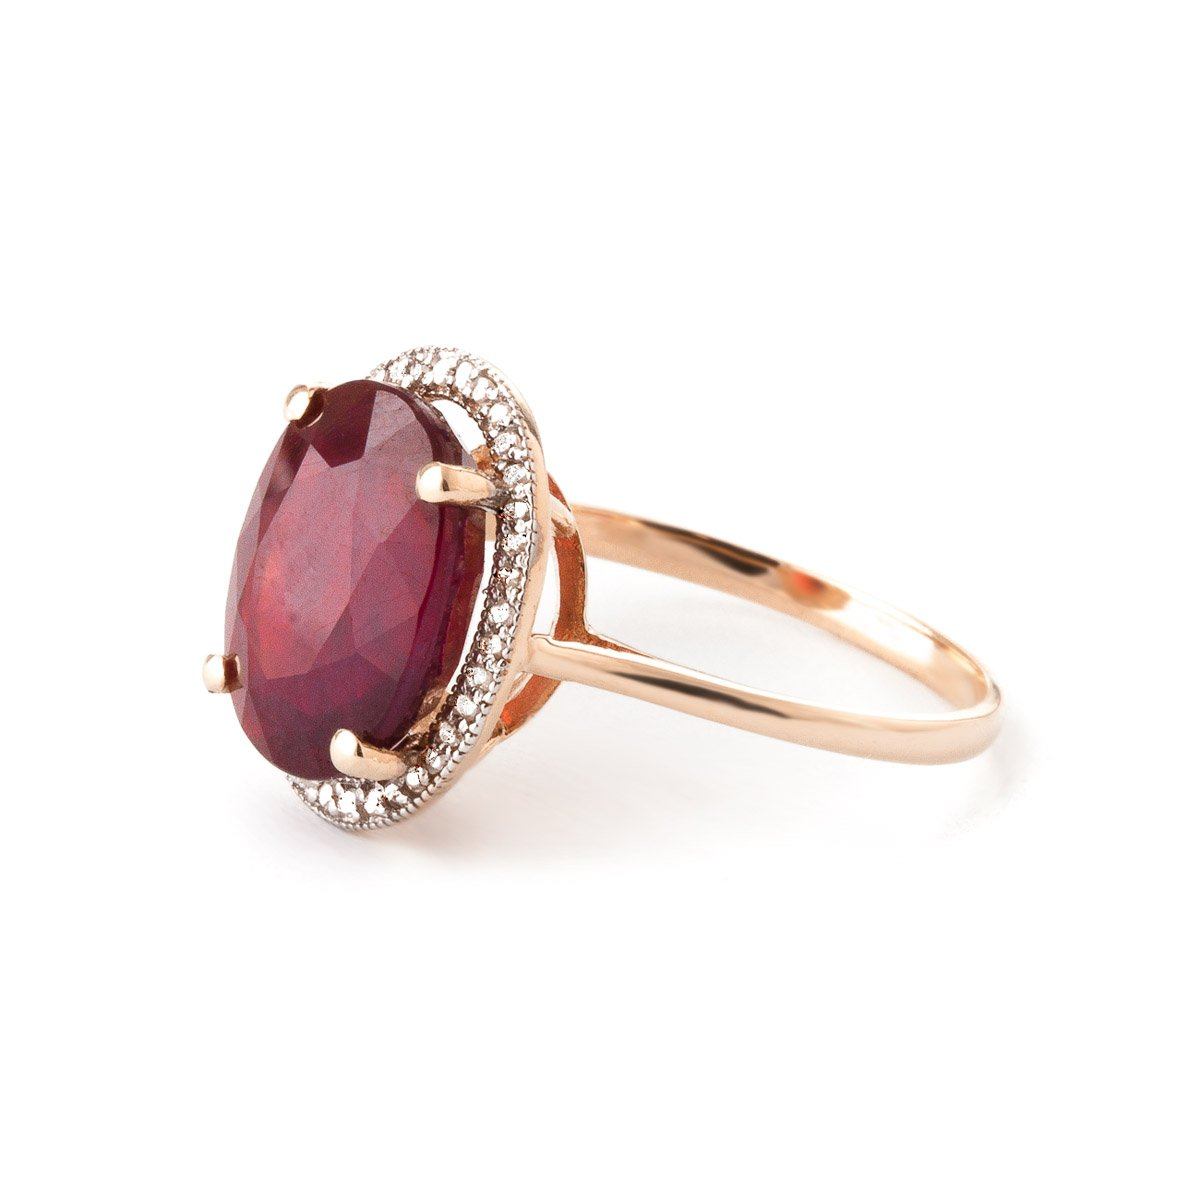 Galaxy Gold7.93 Carat 14k Solid Rose Gold Ring with Natural Oval-Shaped Ruby and Genuine Diamonds - Size 5.5 by Galaxy Gold (Image #2)